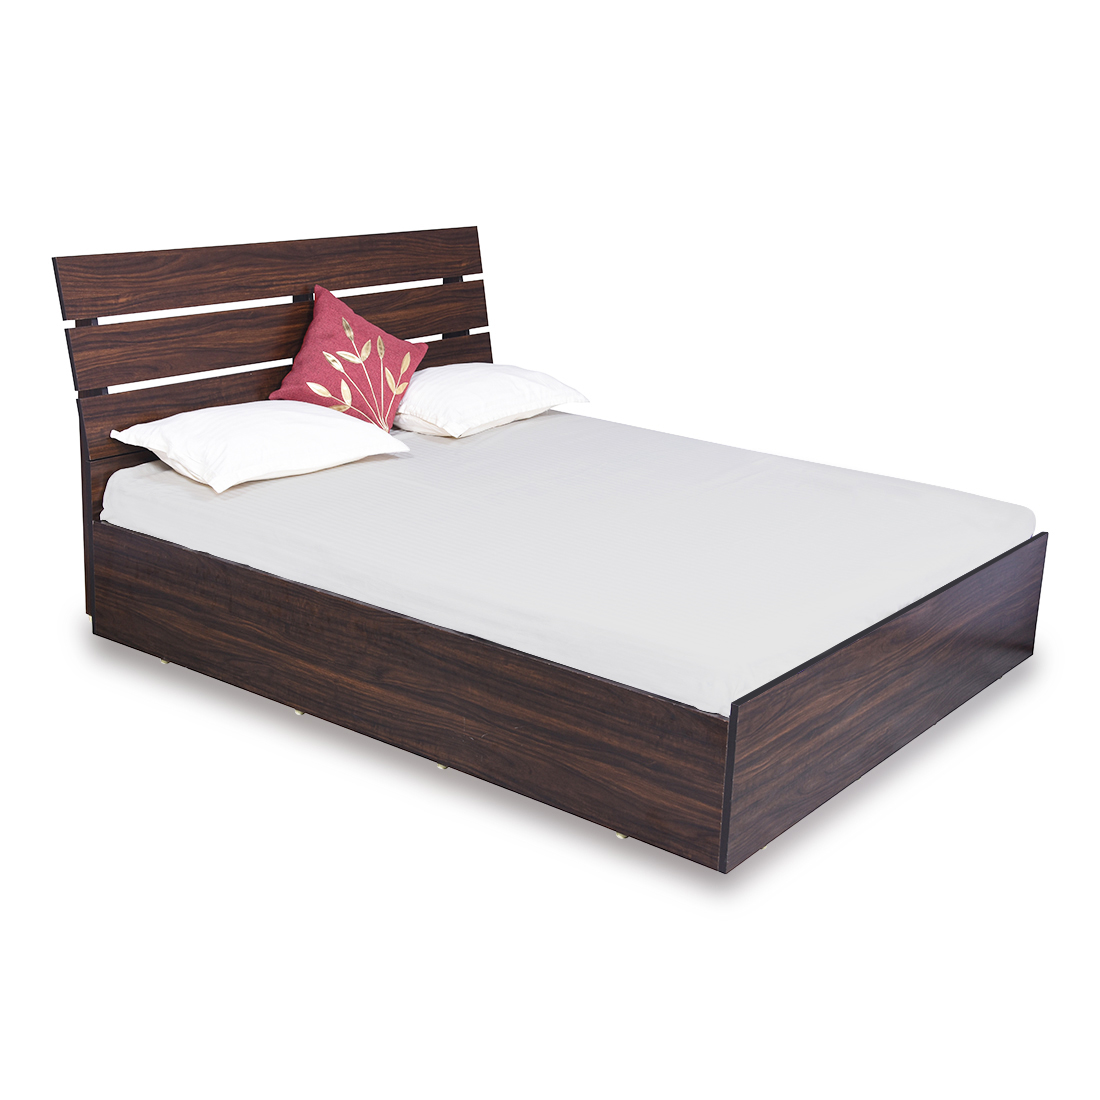 Queen Size Bed.Bharat Lifestyle Havana Engineered Wood Queen Size Bed With Storage